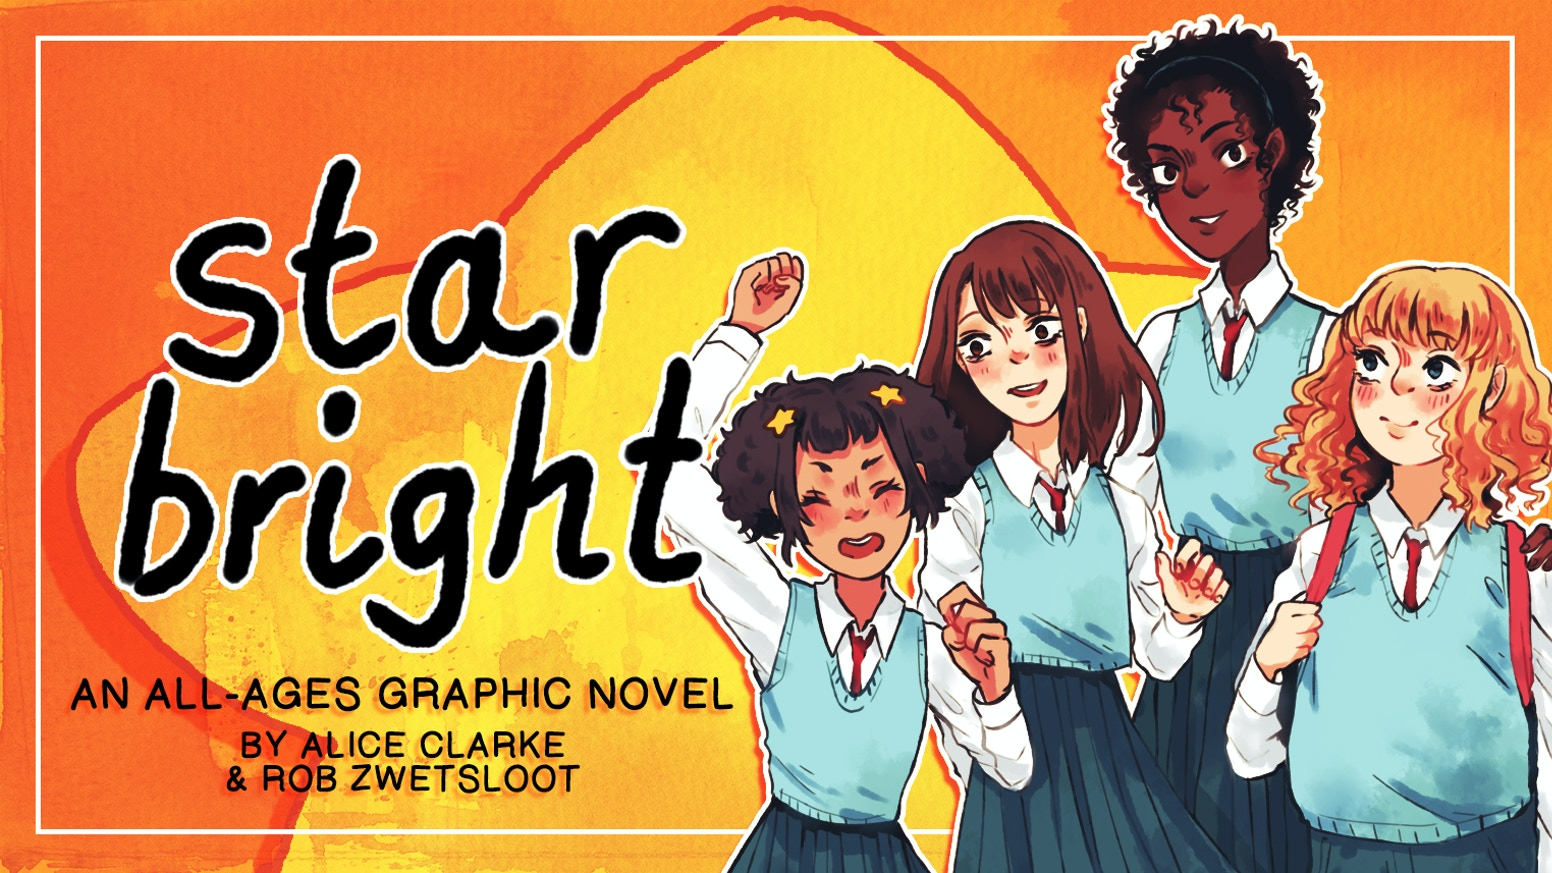 All six chapters of the all-ages webcomic Star Bright collected into one graphic novel.